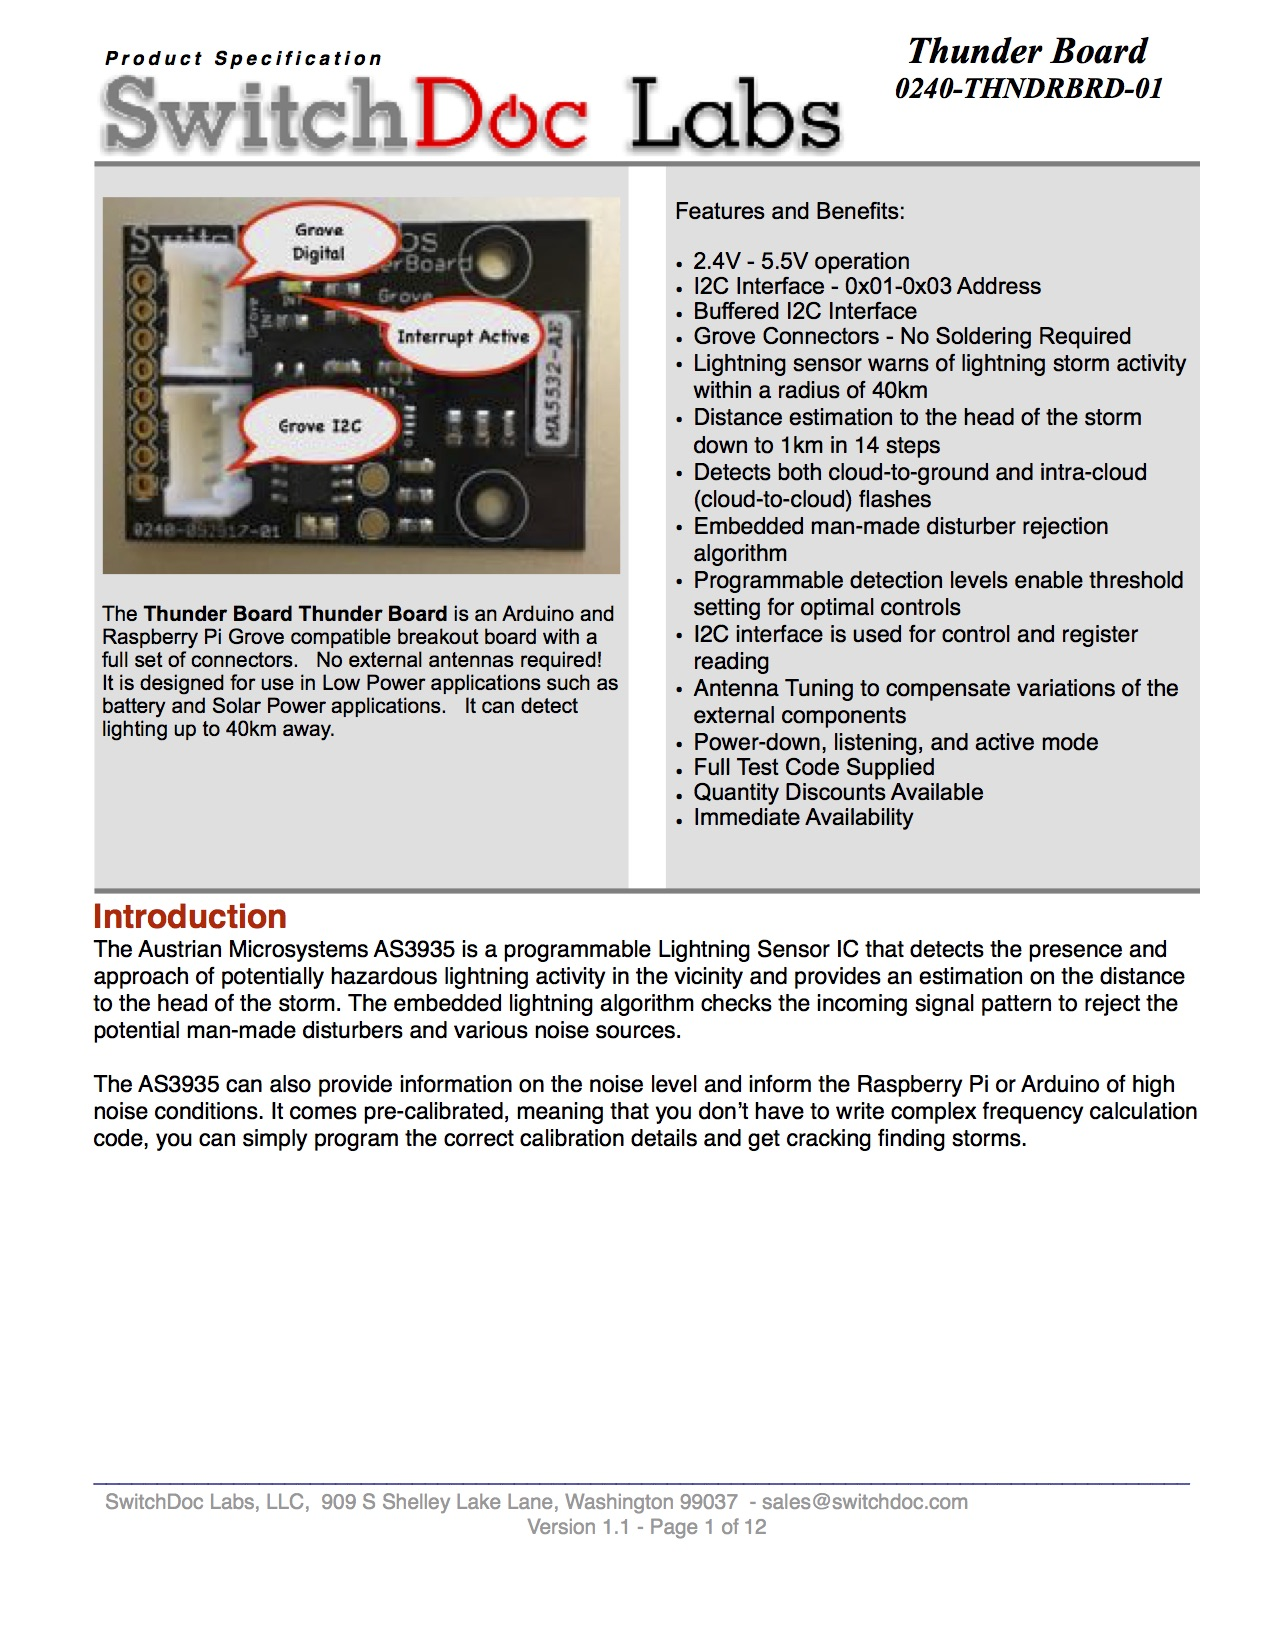 Thunder Board Lightning Detector Specification Released